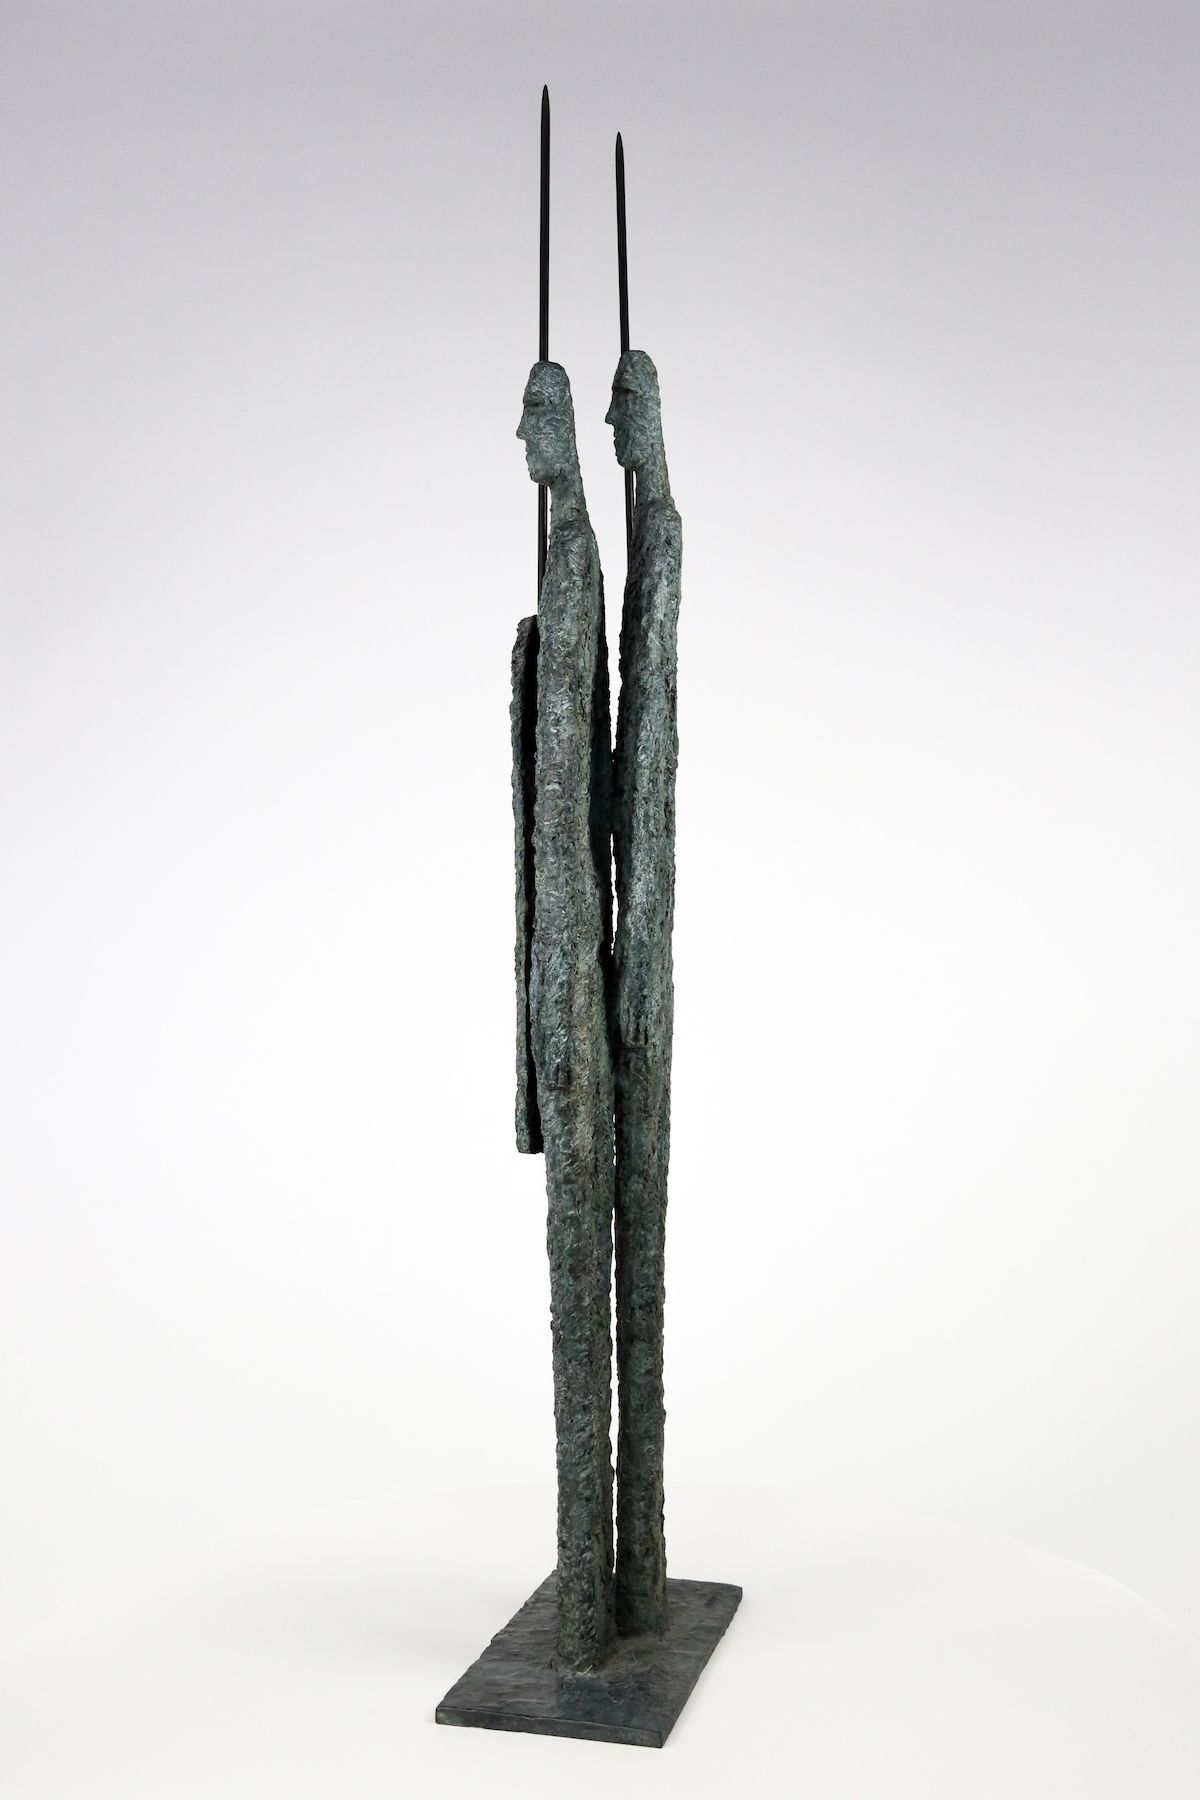 Great Warriors, Primary Forms series - Martine Demal - Sculpture - detail 2